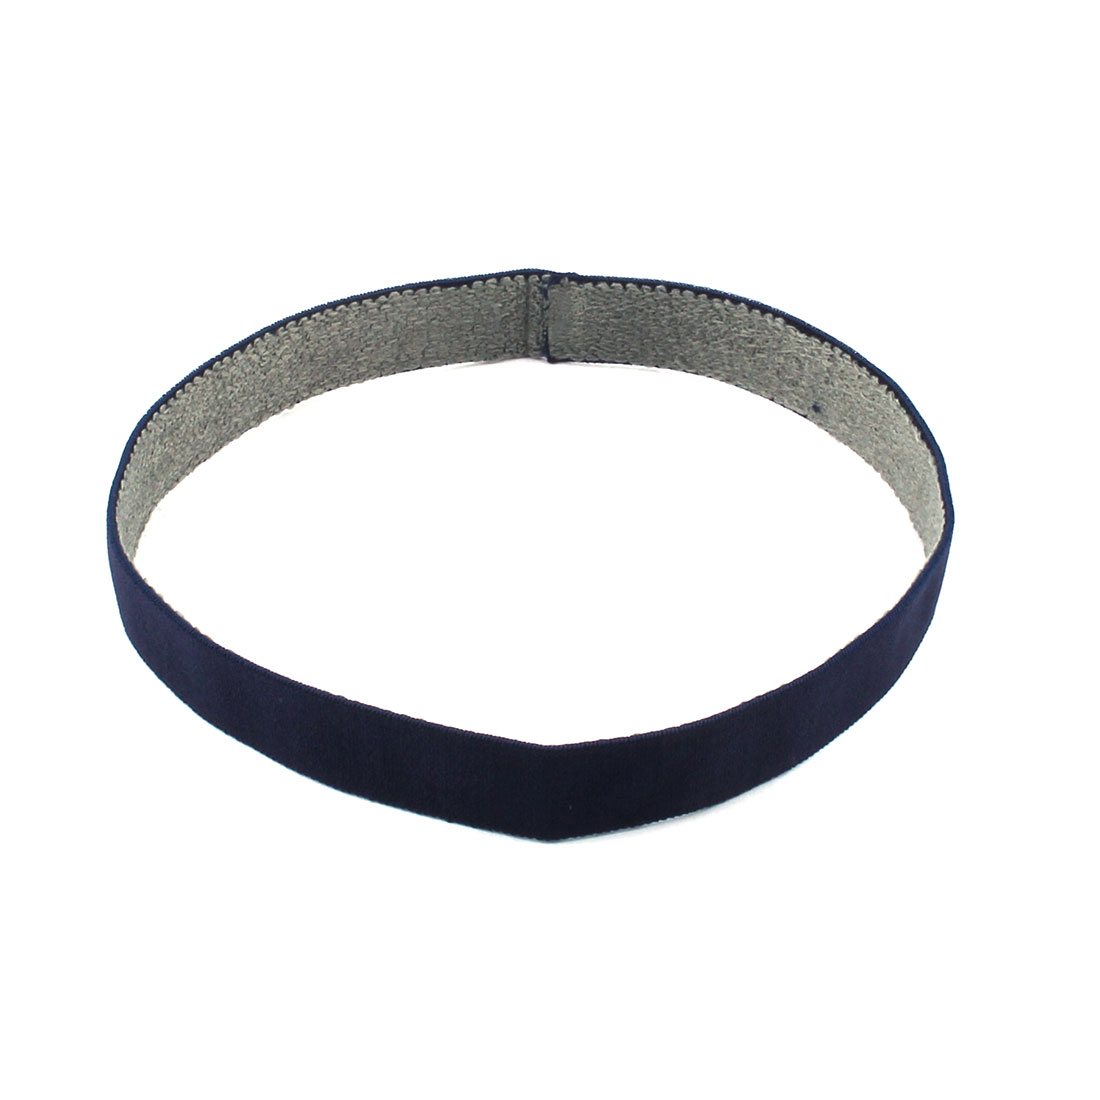 Athletic Polyester Strech Sweat Wicking Sports Headband Headwrap Navy Blue